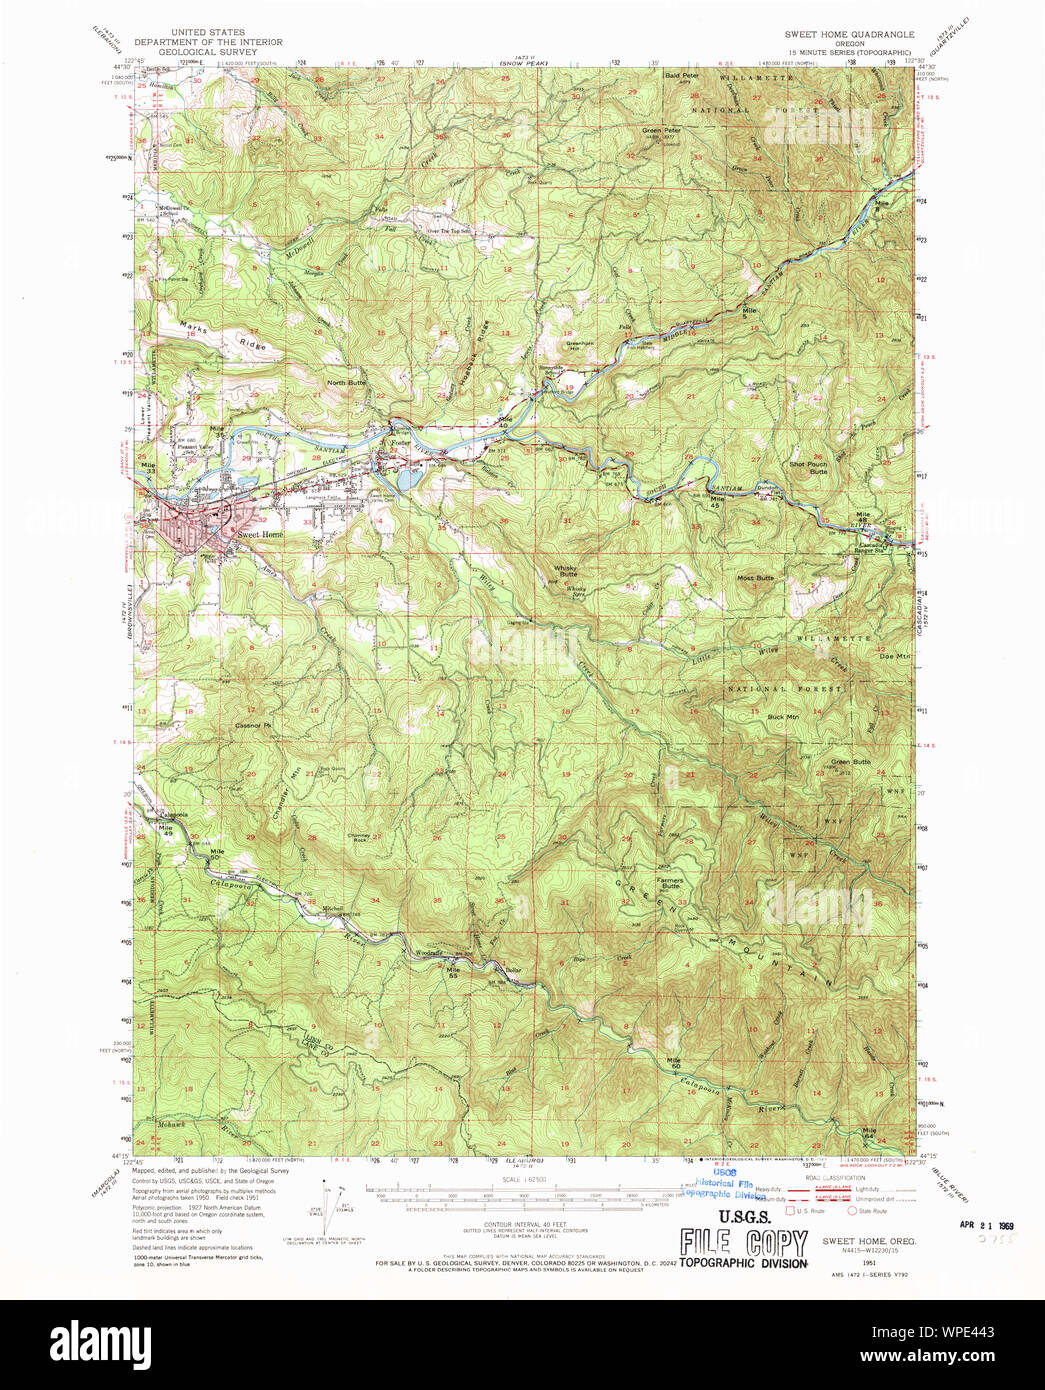 map sweet home oregon Usgs Topo Map Oregon Sweet Home 282935 1951 62500 Restoration map sweet home oregon